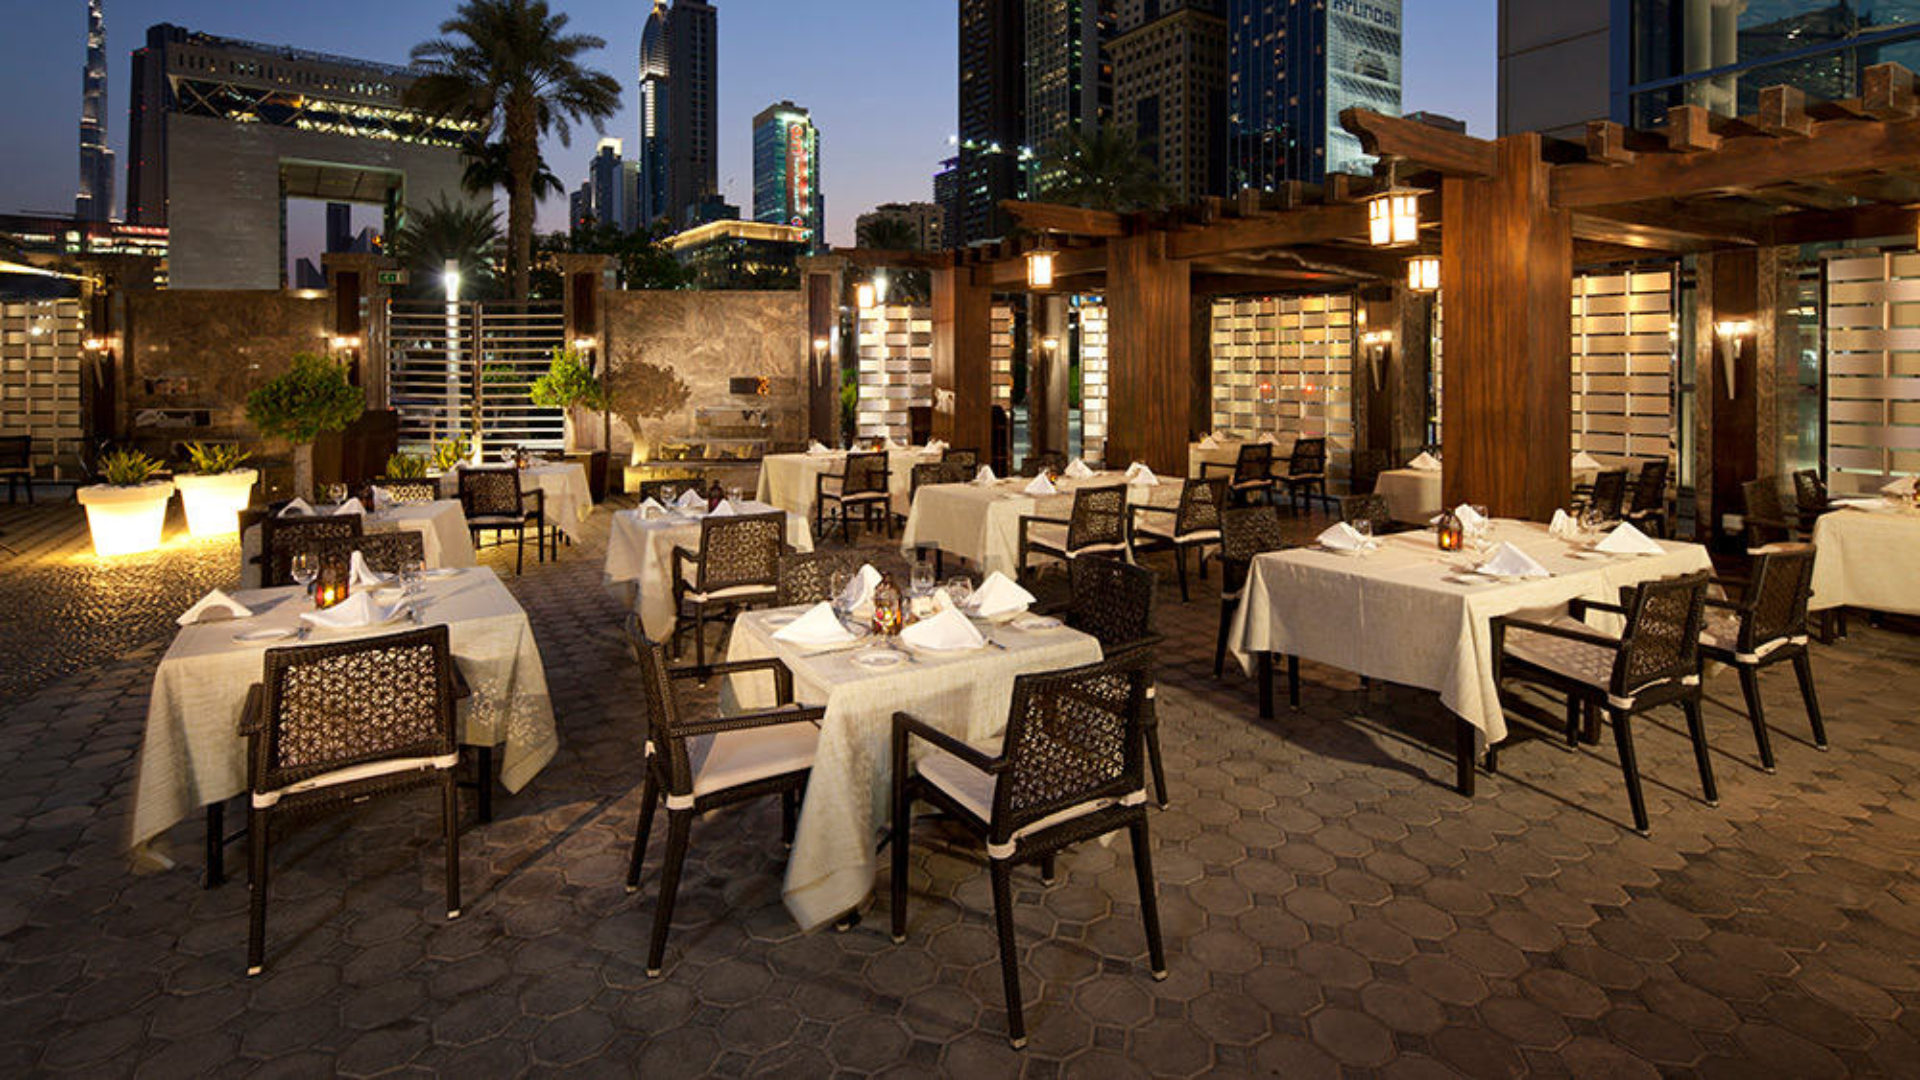 Outdoor dining at Al Nafoorah at Jumeirah Emirates Towers